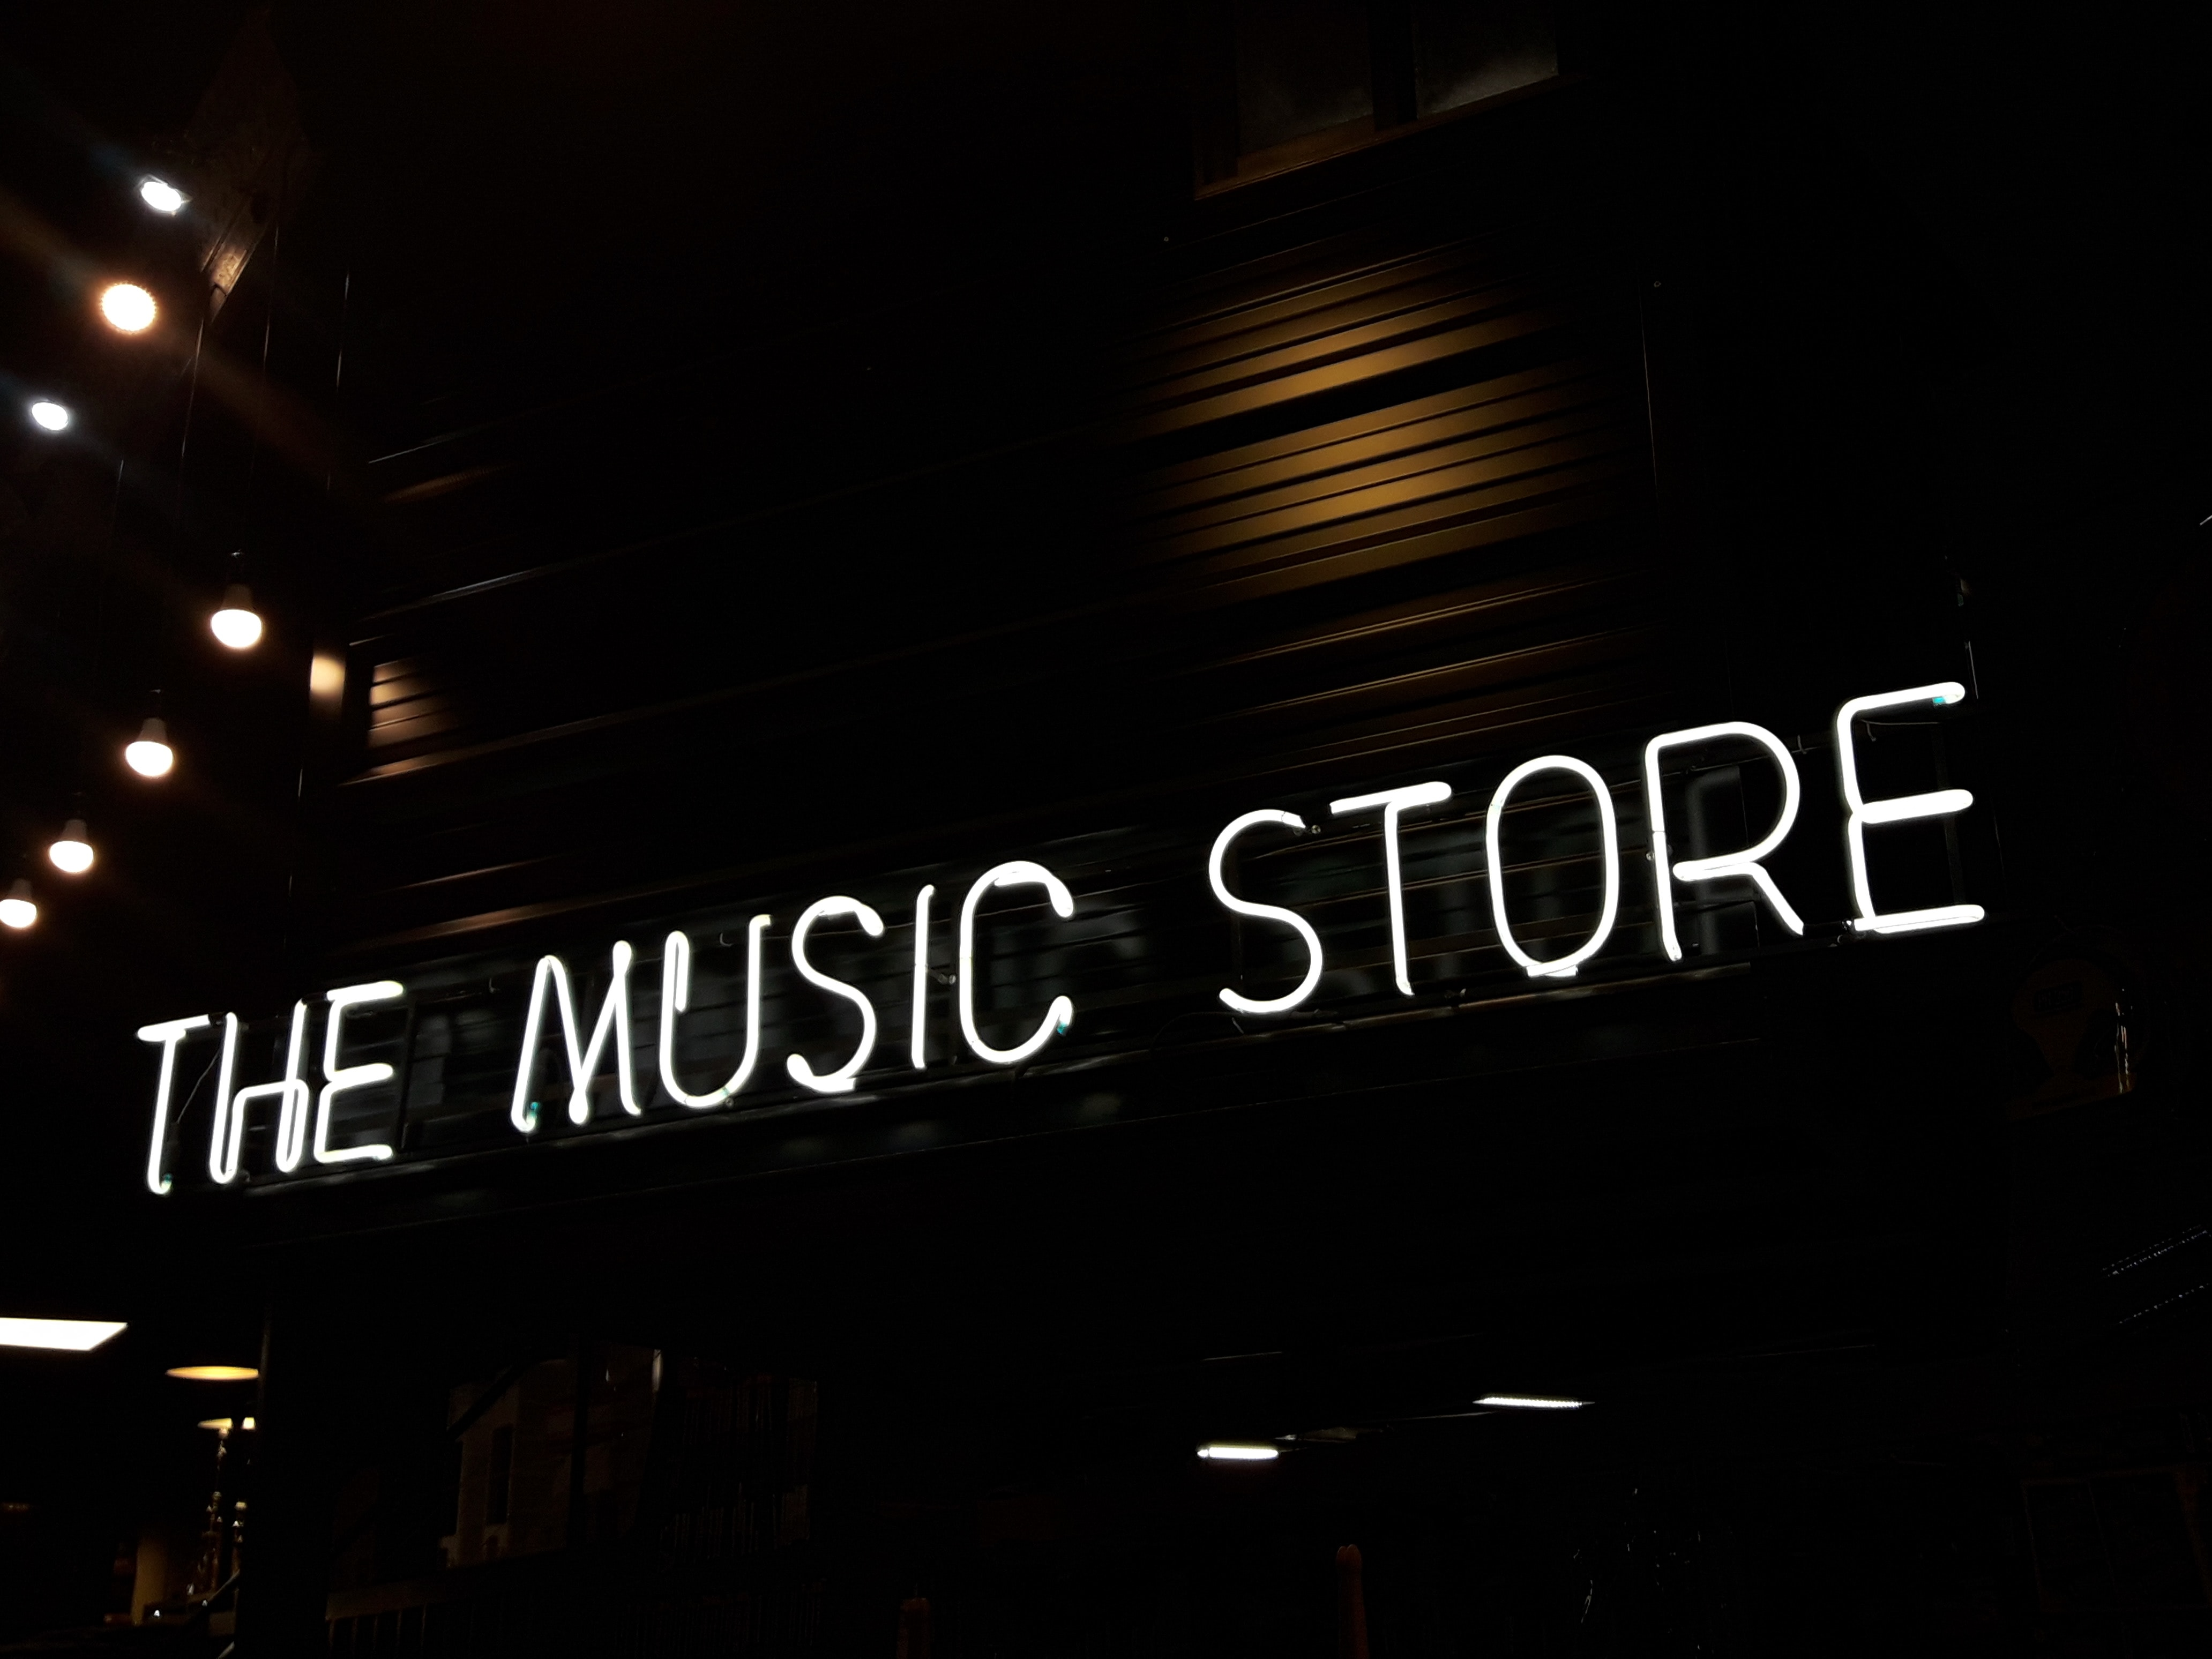 Neon sign for the music store